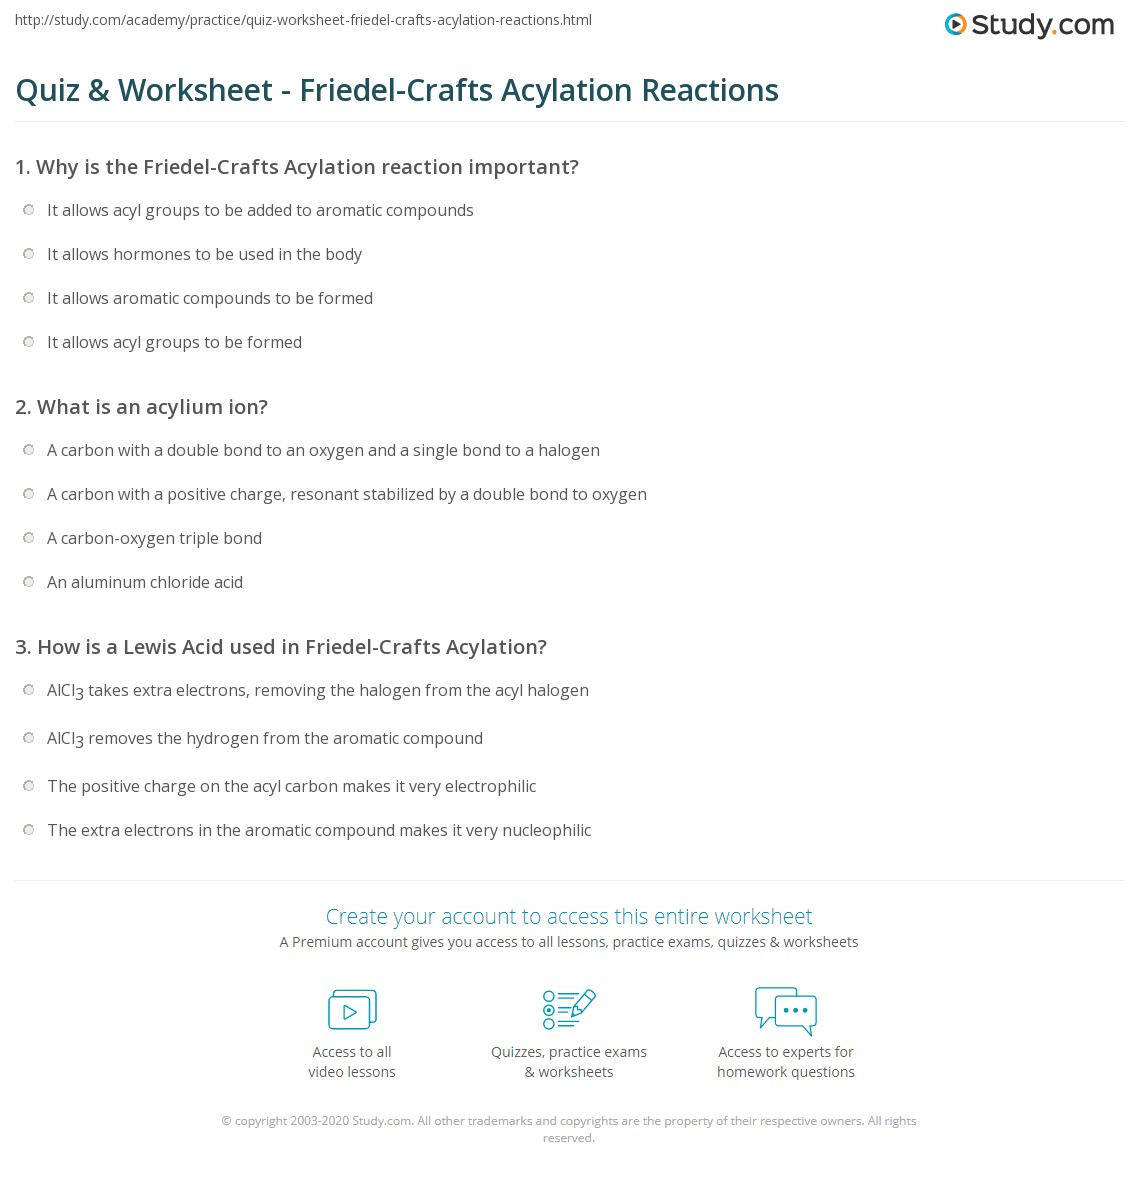 Quiz & Worksheet - Friedel-Crafts Acylation Reactions